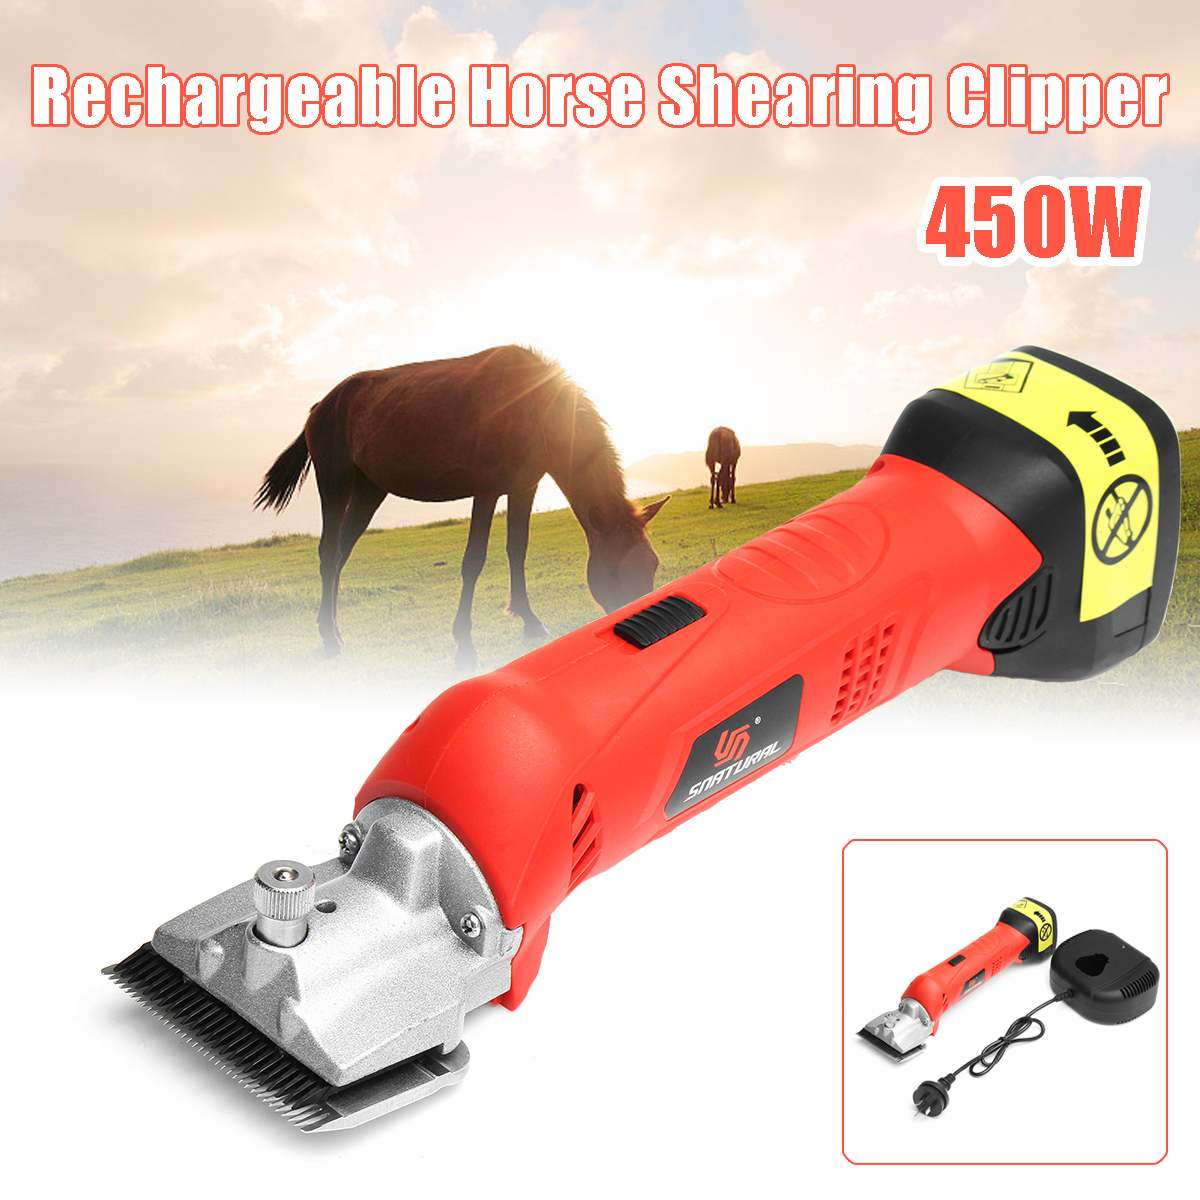 450W Rechargeable Electric Clipper Horse Hair Shearing Shears Machine Pet Animal Red